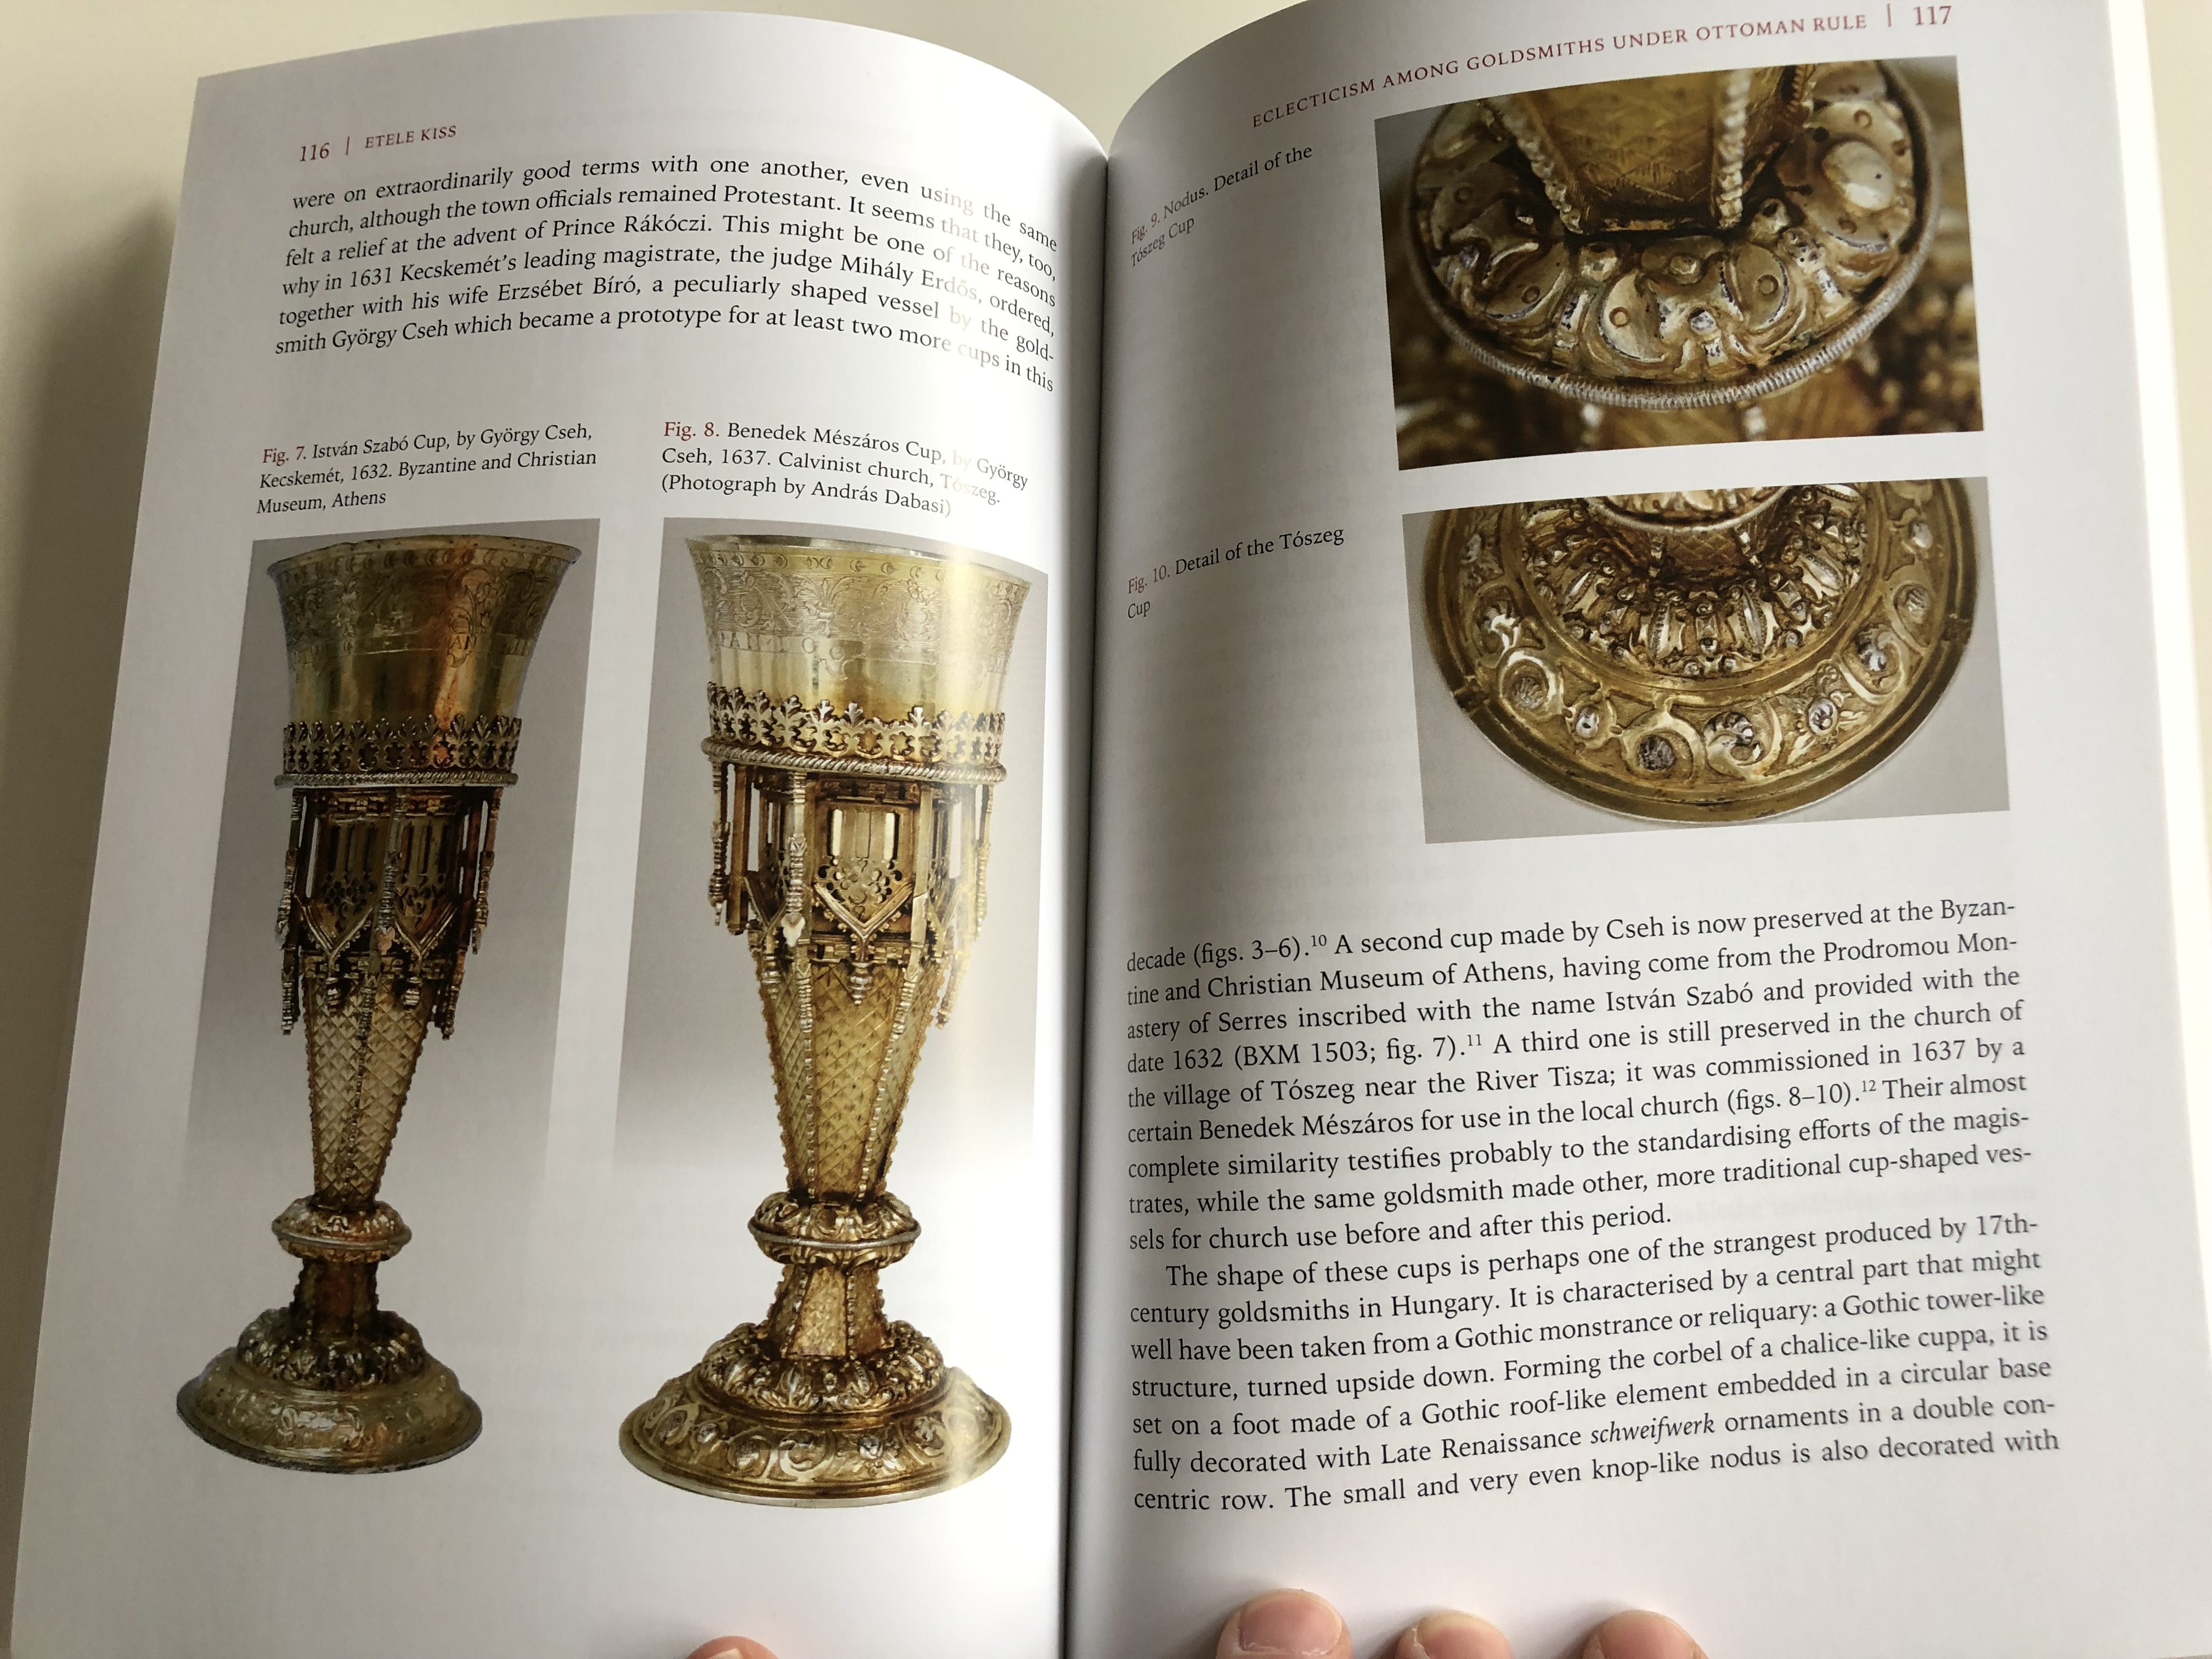 ottoman-metalwork-in-the-balkans-and-in-hungary-by-ibolya-gerelyes-and-maximilian-hartmuth-hungarian-national-museum-paperback-2015-13-.jpg